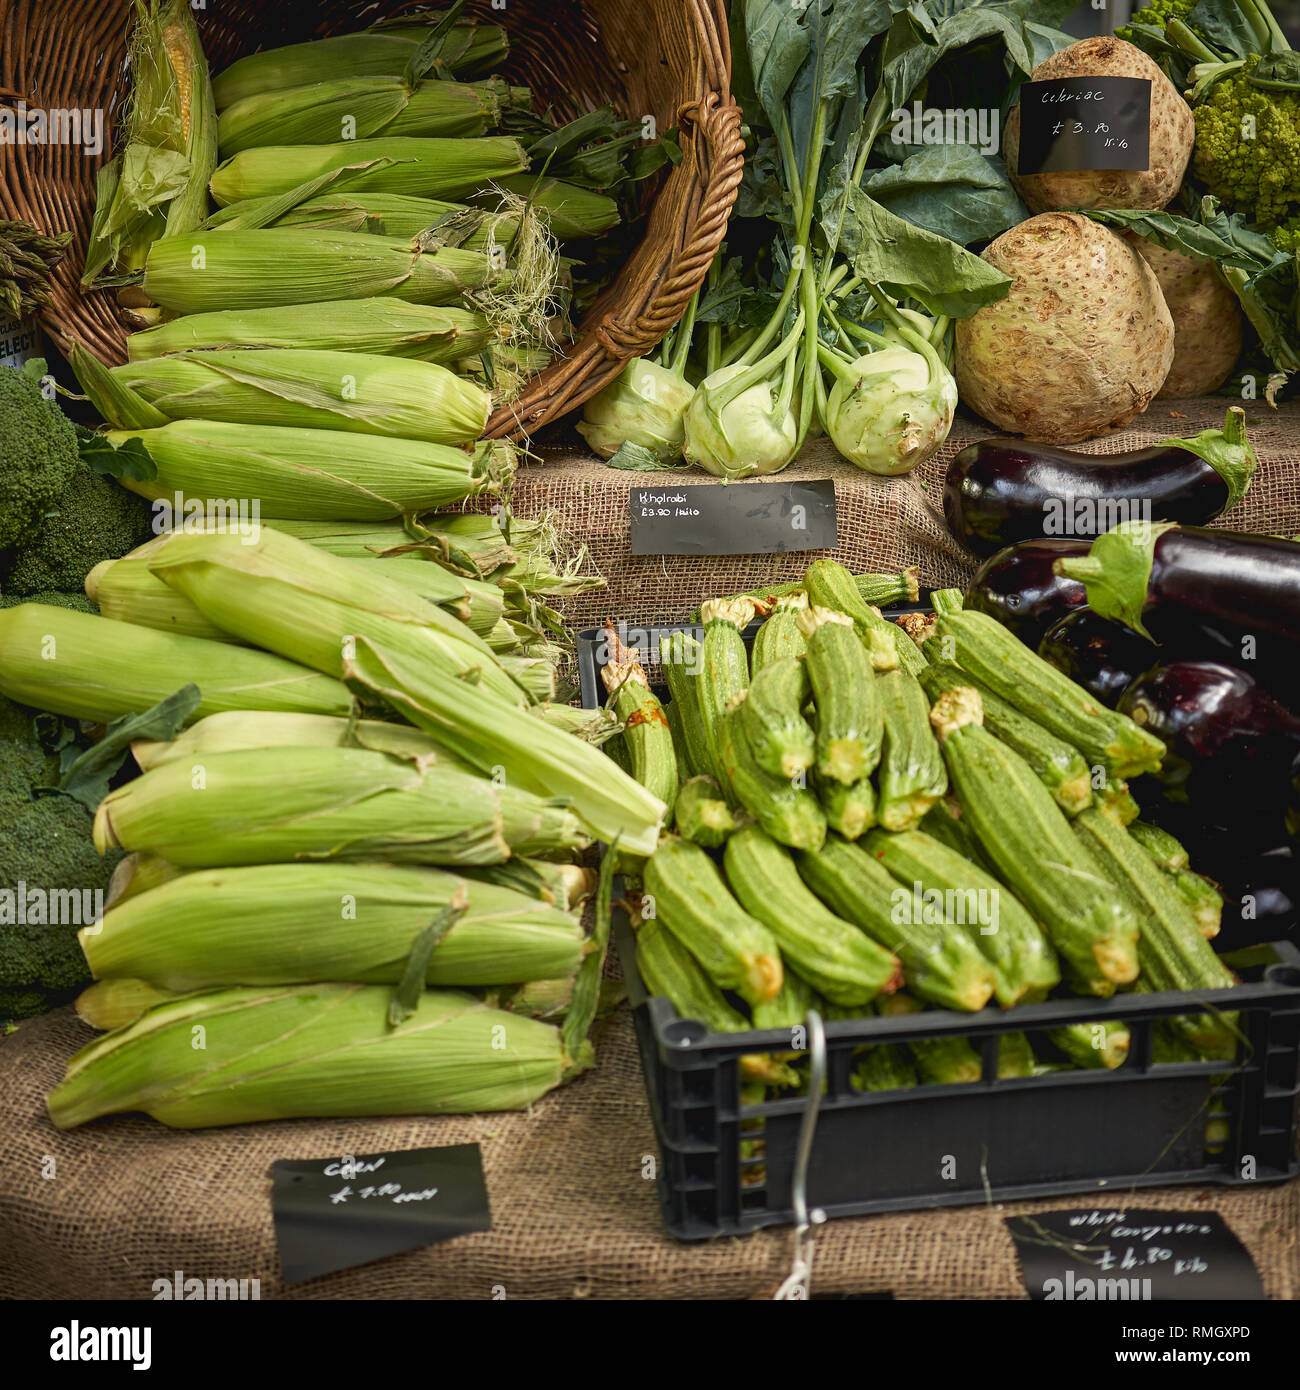 Green groceries including courgettes, aubergines, asparagus, red peppers and broccoli on sale at a vegetables stall in a local farmer market. Stock Photo